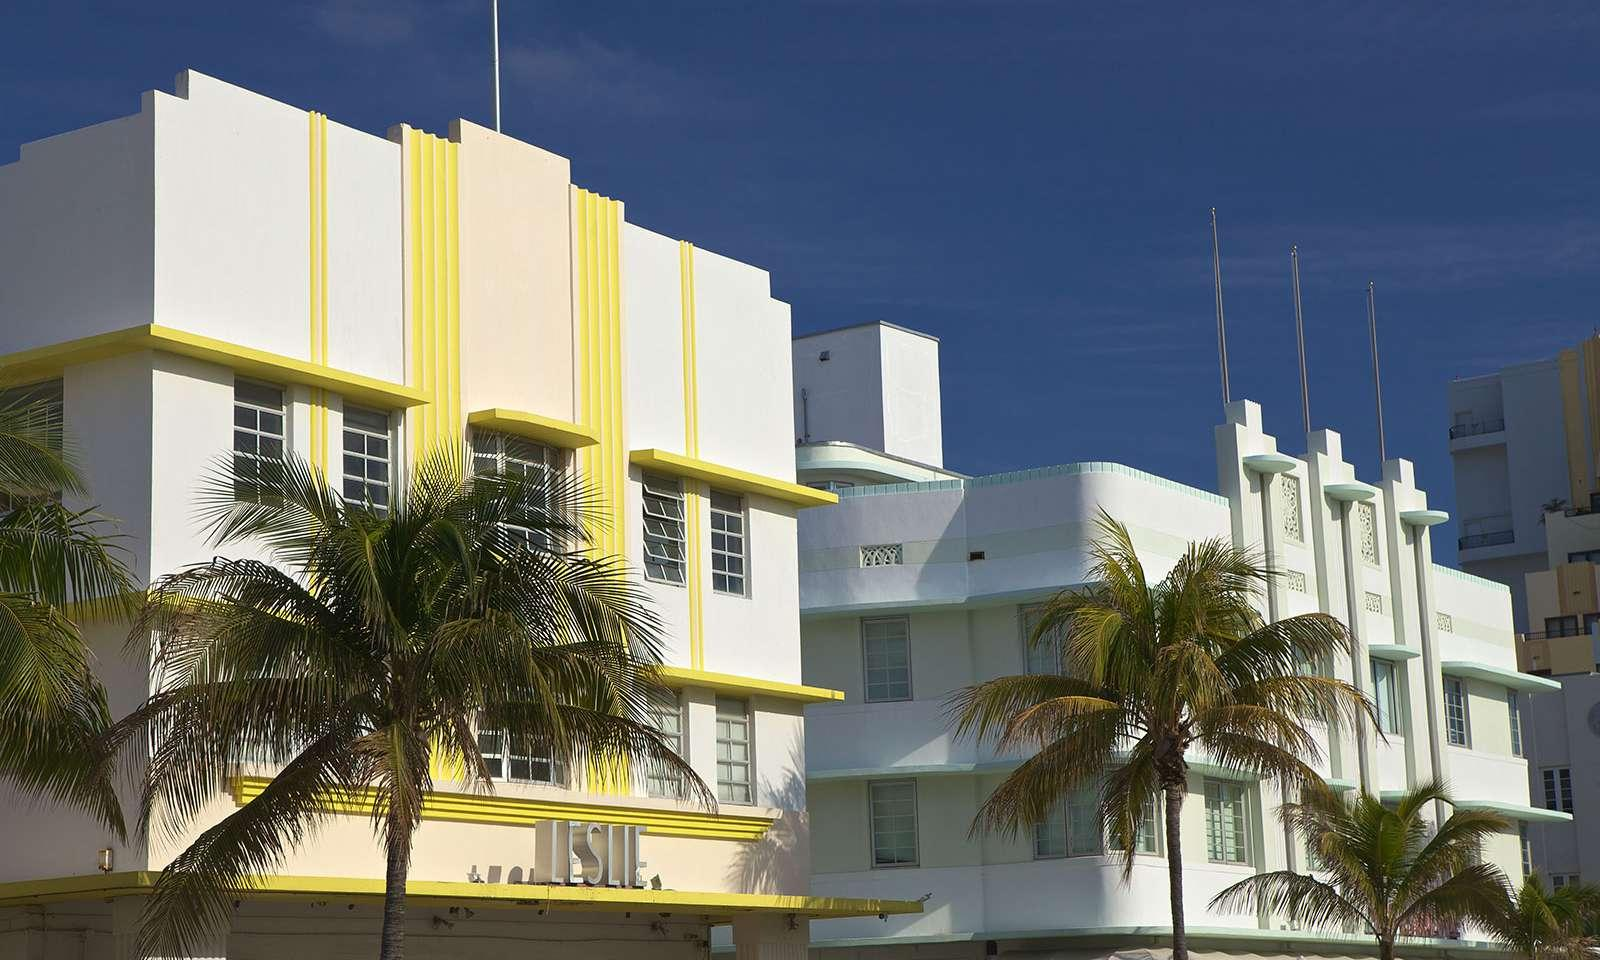 Estilo art deco de miami